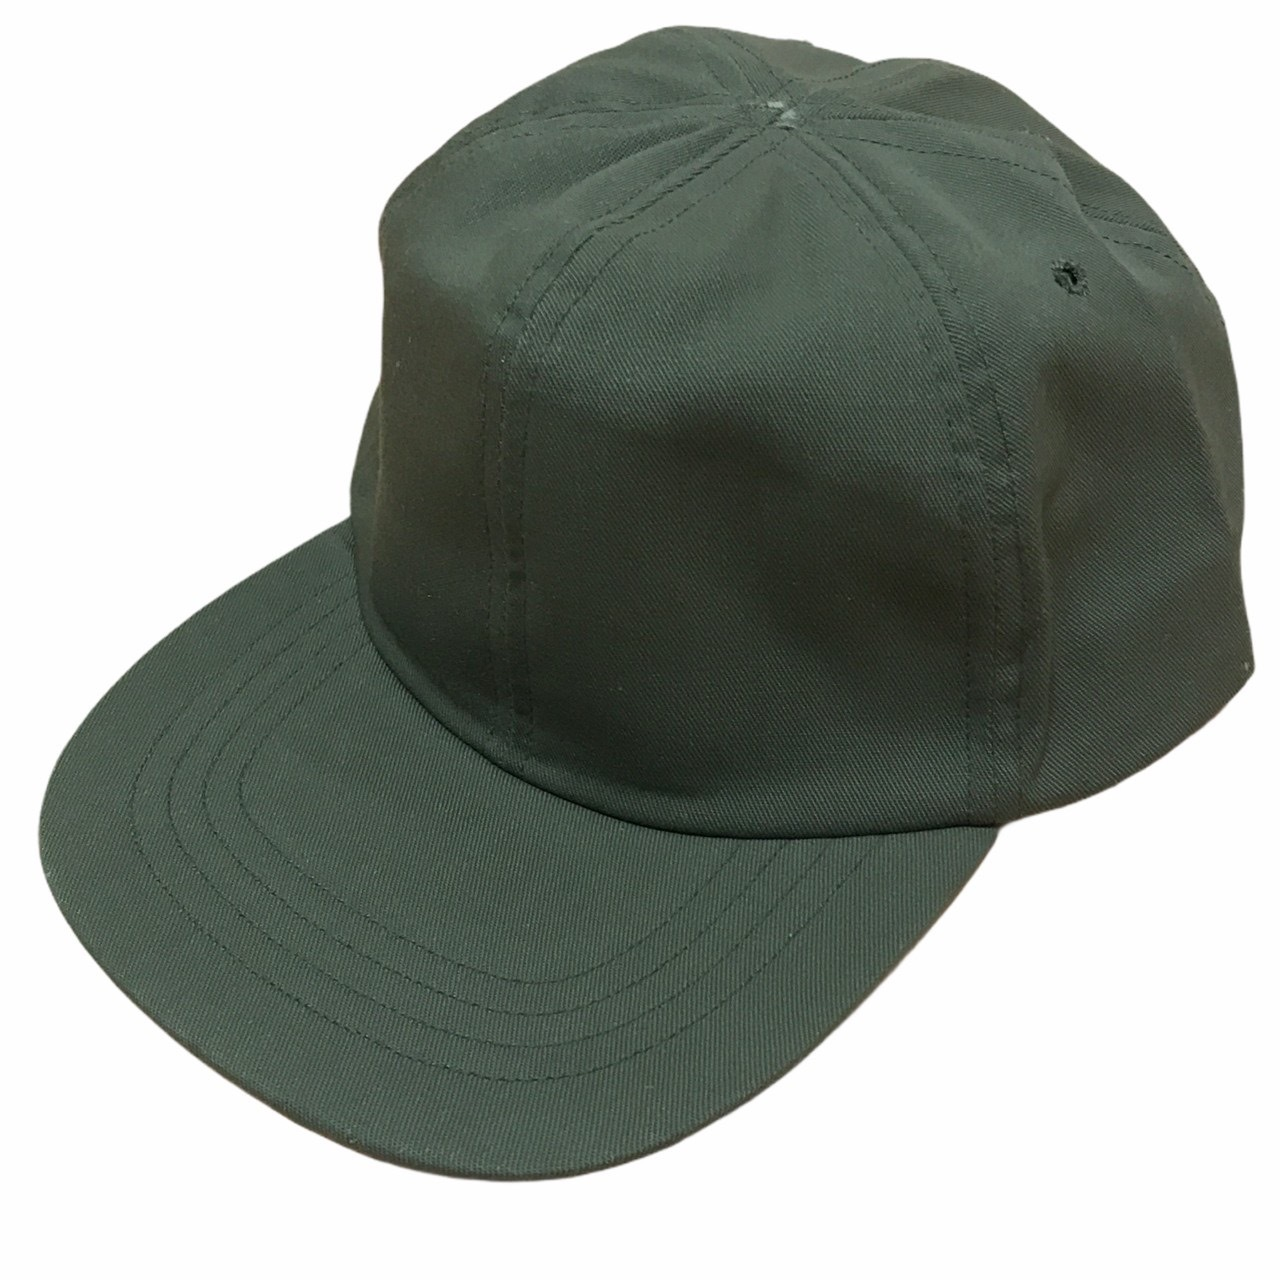 80's Dead stock U.S.ARMY CAP,HOT WEATHER,OLIVE GREEN 507